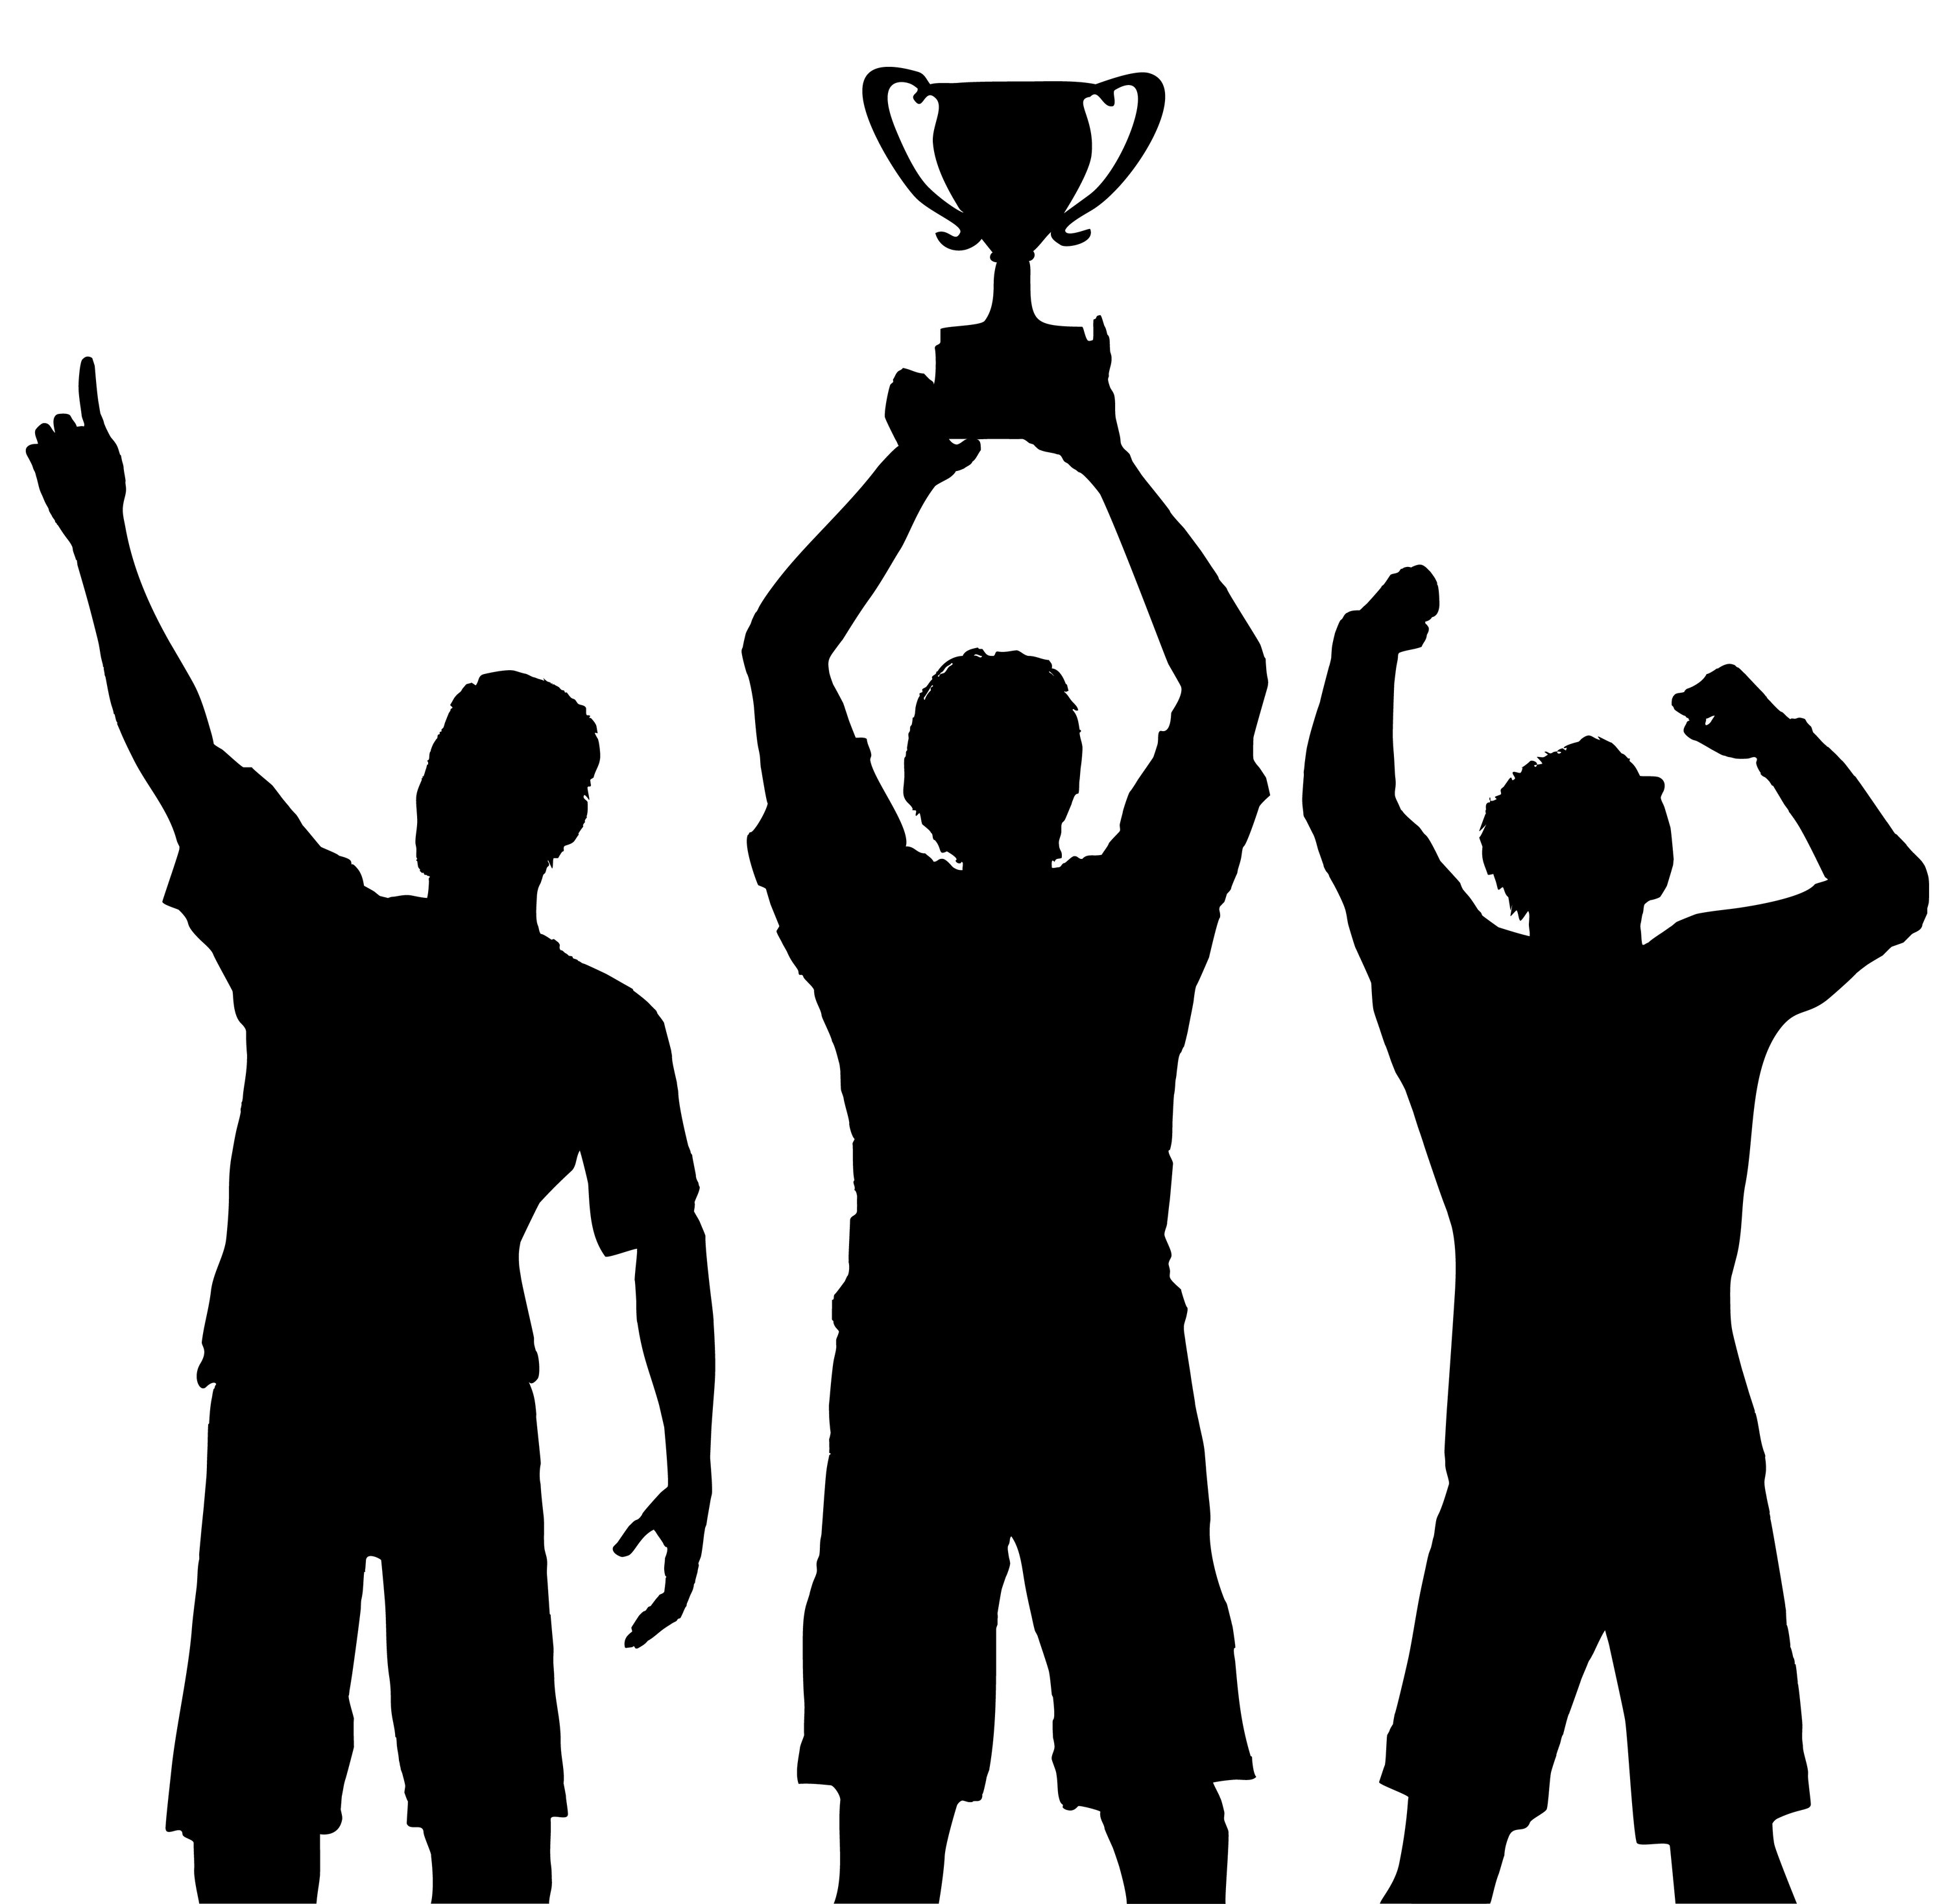 Winning clipart team win  Clip Art Collection Free